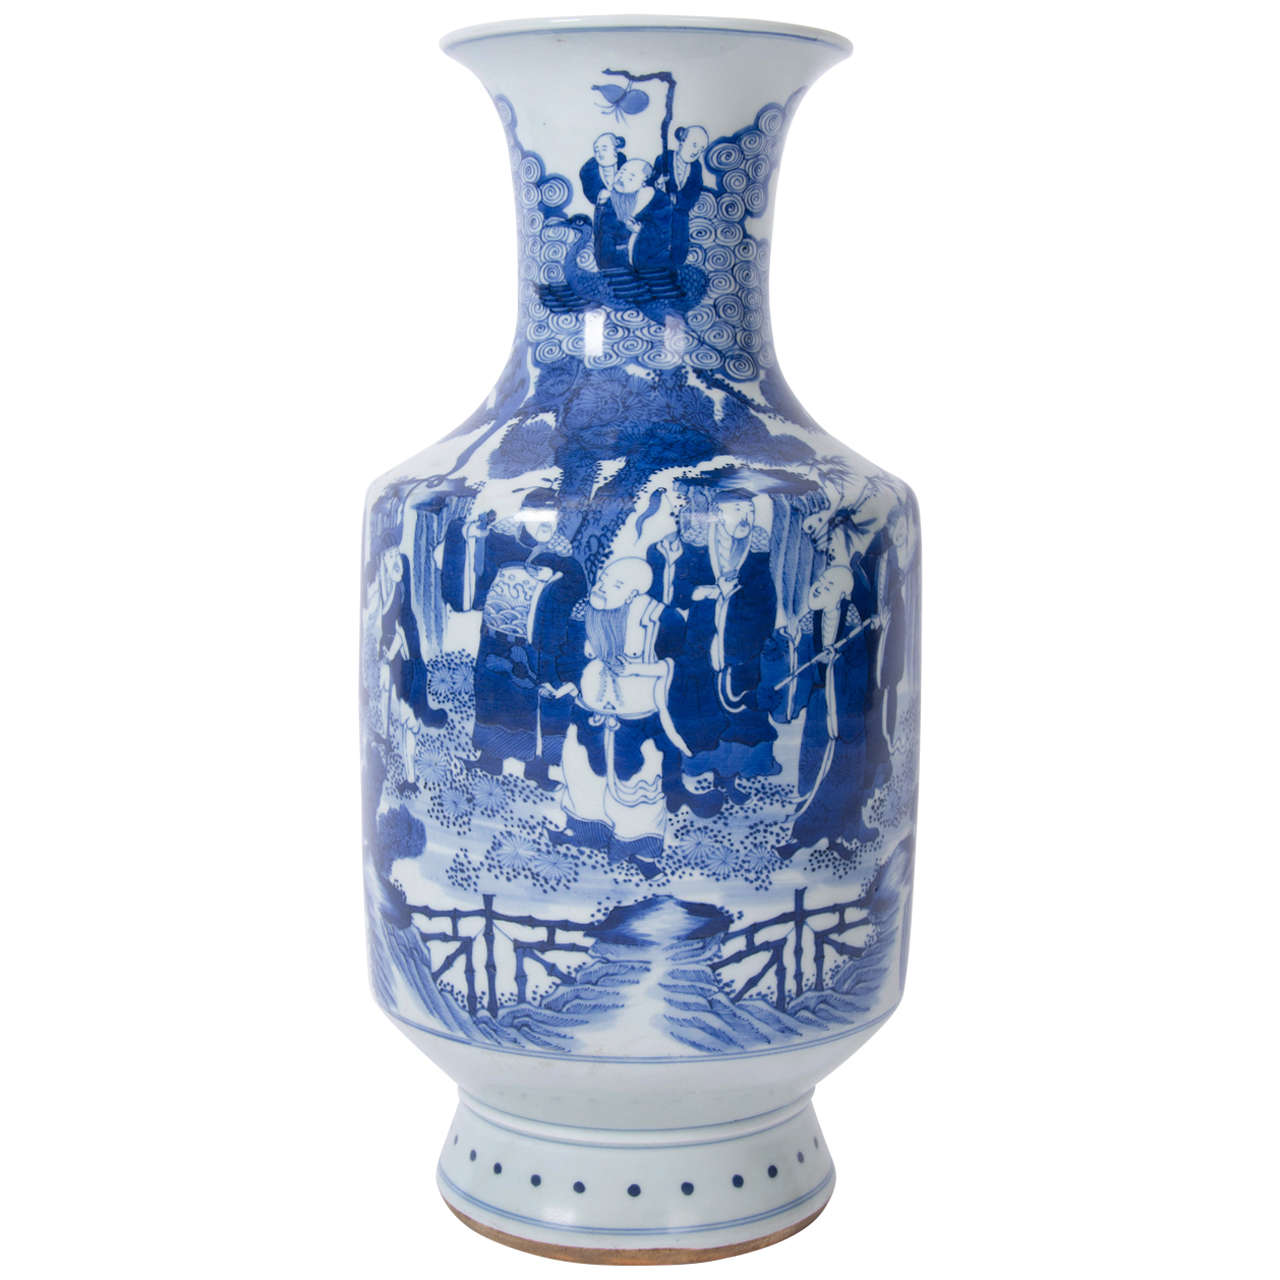 Early 19th c large chinese vase blue and white porcelain qing early 19th c large chinese vase blue and white porcelain qing reviewsmspy